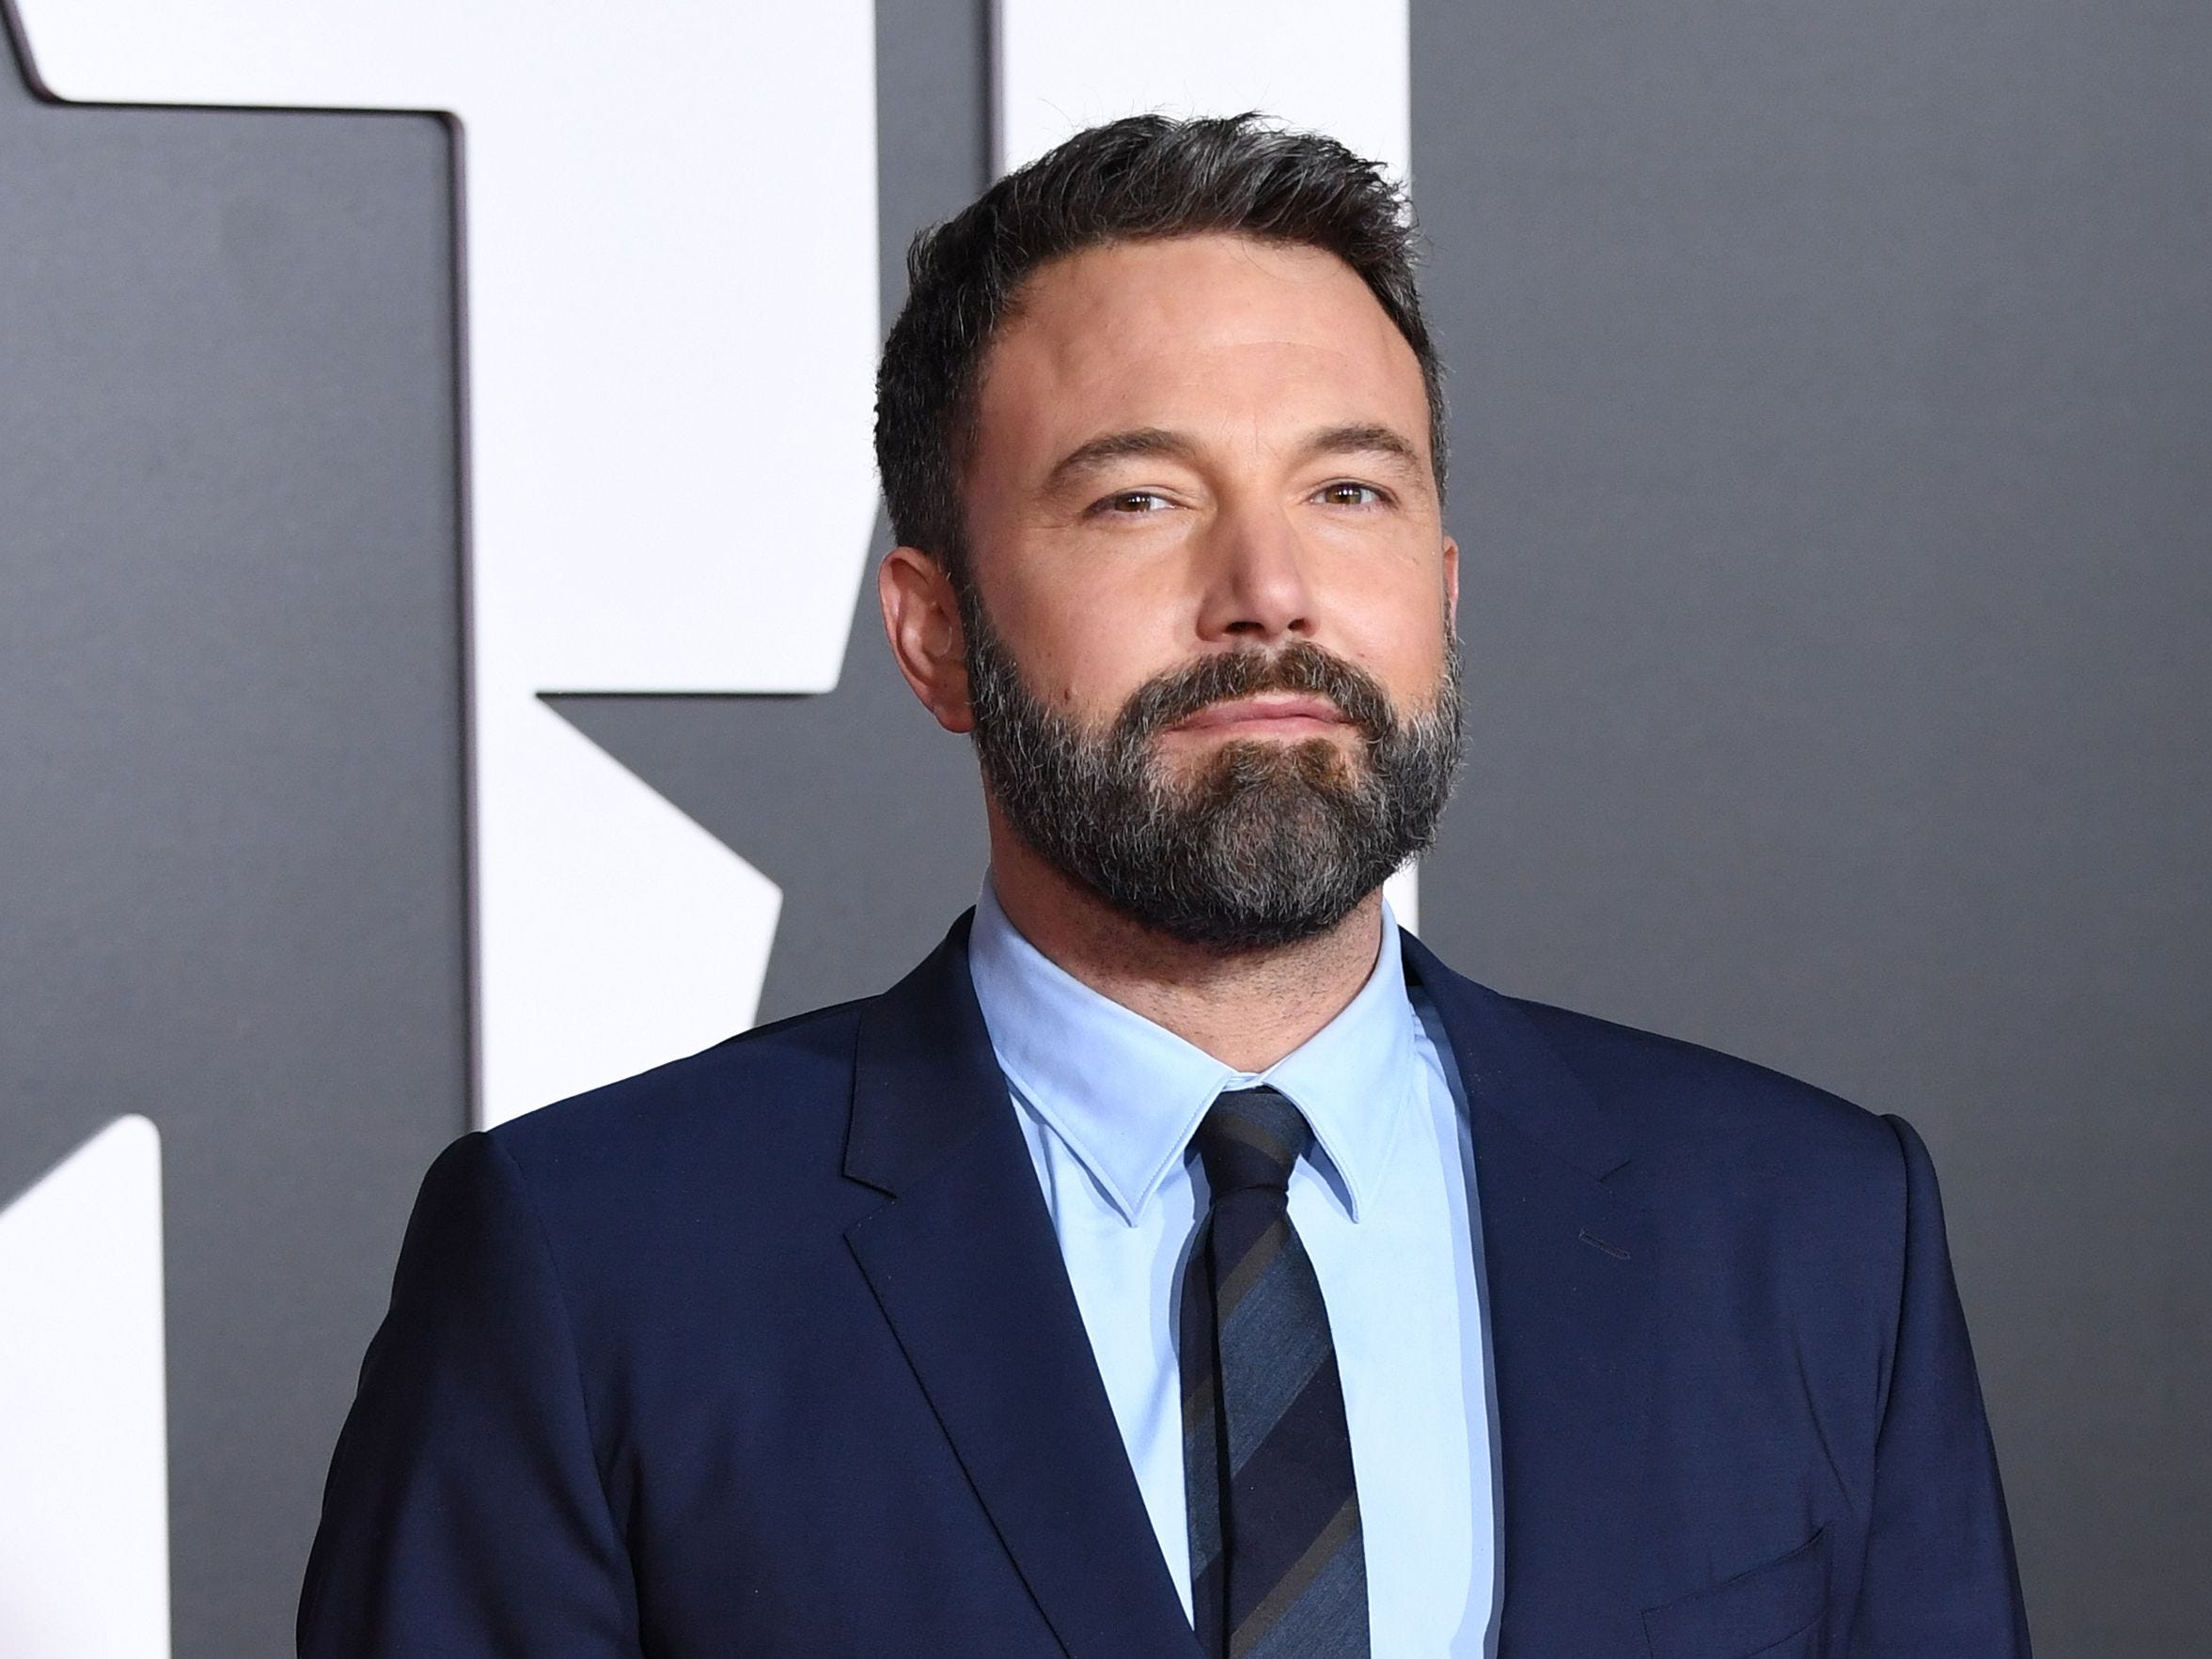 US actor Ben Affleck poses as he arrives for the world premiere of Warner Bros. Pictures film 'Justice League' at The Dolby Theatre in Hollywood, California on November 13, 2017. / AFP PHOTO / Robyn BeckROBYN BECK/AFP/Getty Images ORIG FILE ID: AFP_U91FZ